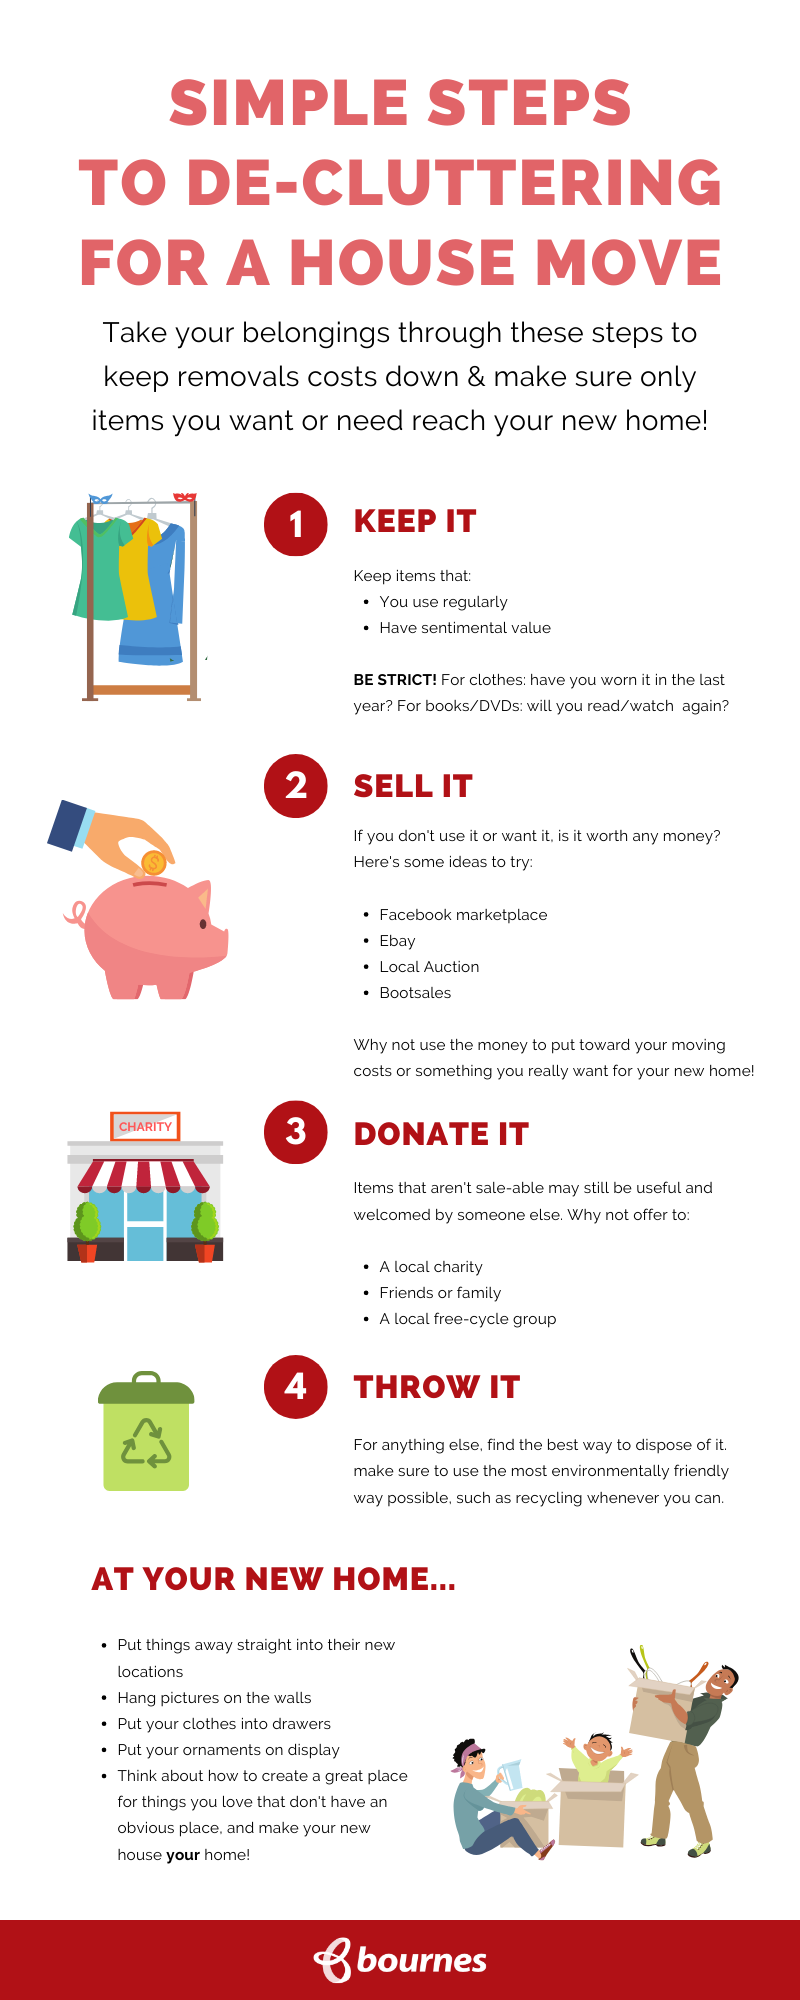 De-cluttering before moving house Infographic